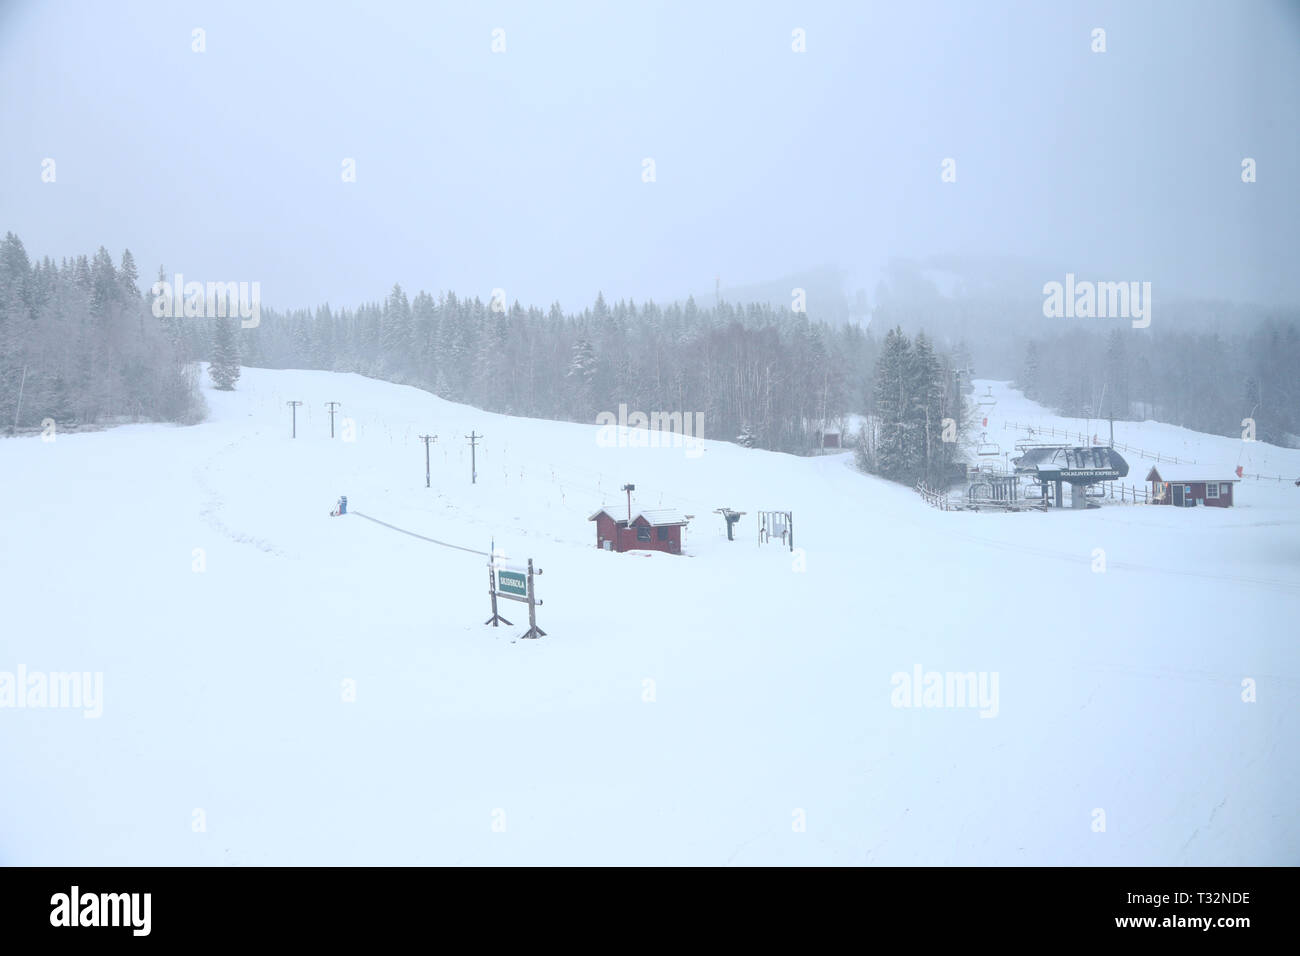 Sellnäs, Sweden 20190405 Snowstorm in Dalarna on Friday evening. Piste machines on duty in the slopes at Romme Alpin during the snowfall on Friday evening. Photo Jeppe Gustafsson - Stock Image